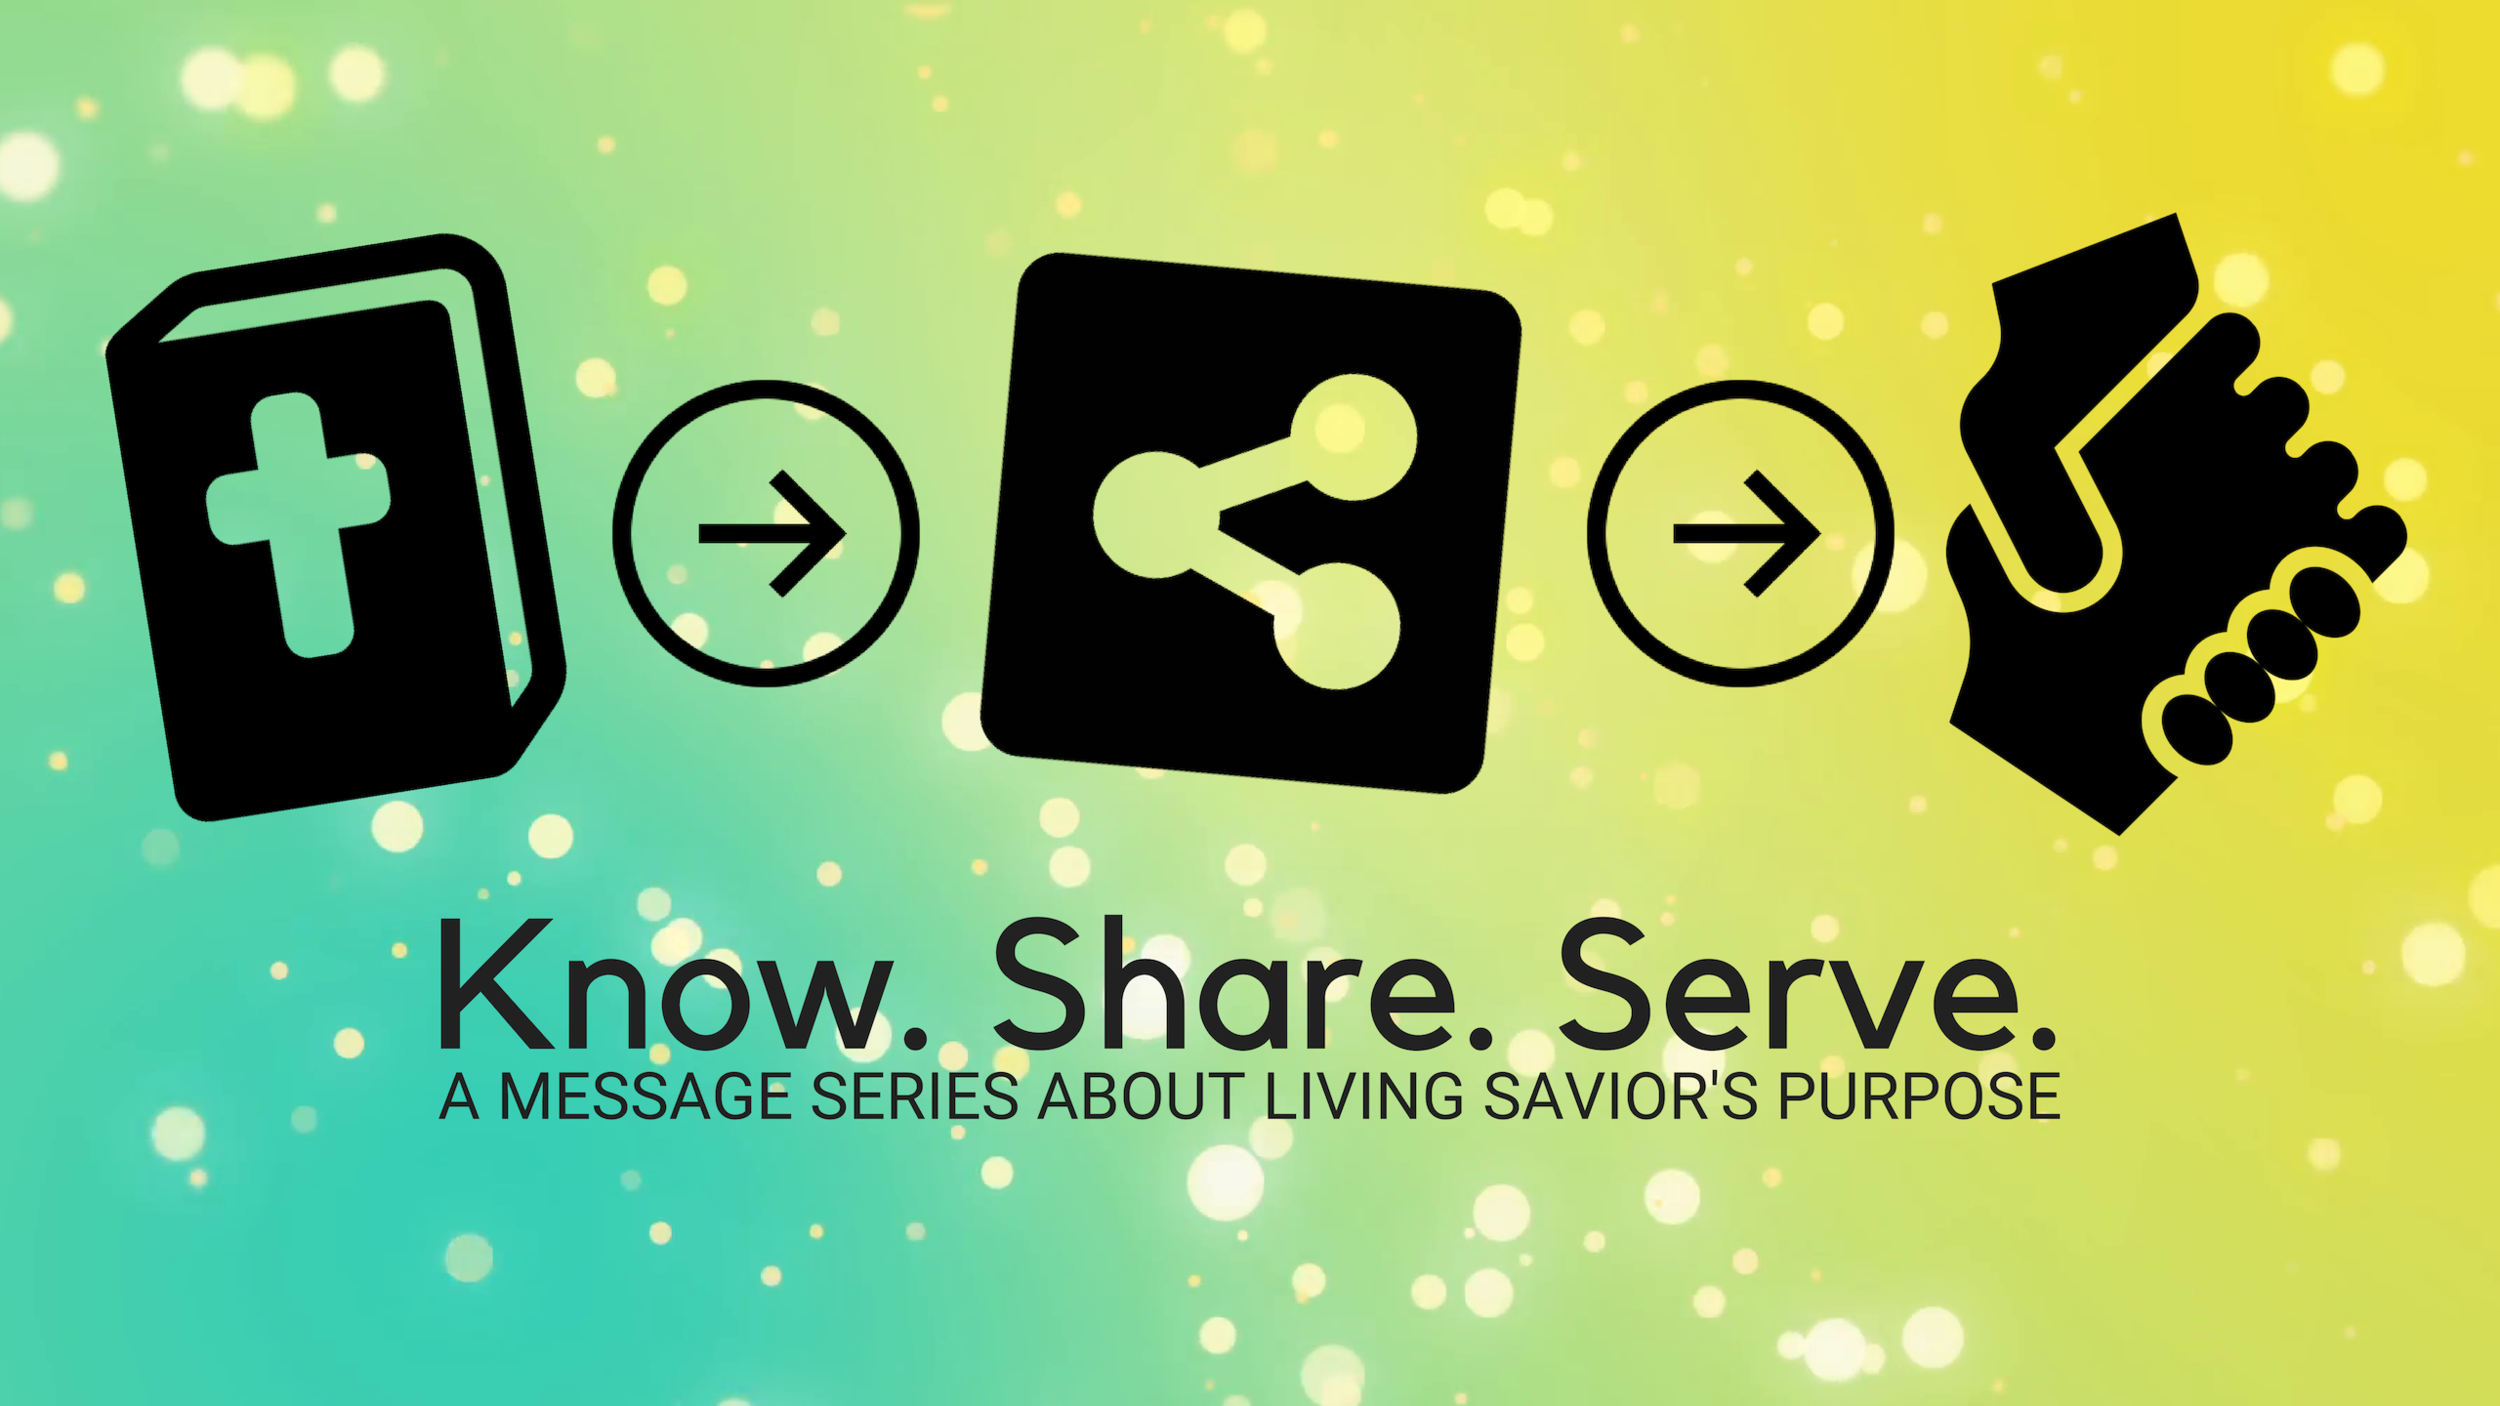 Copy of KNOW SHARE SERVE.png